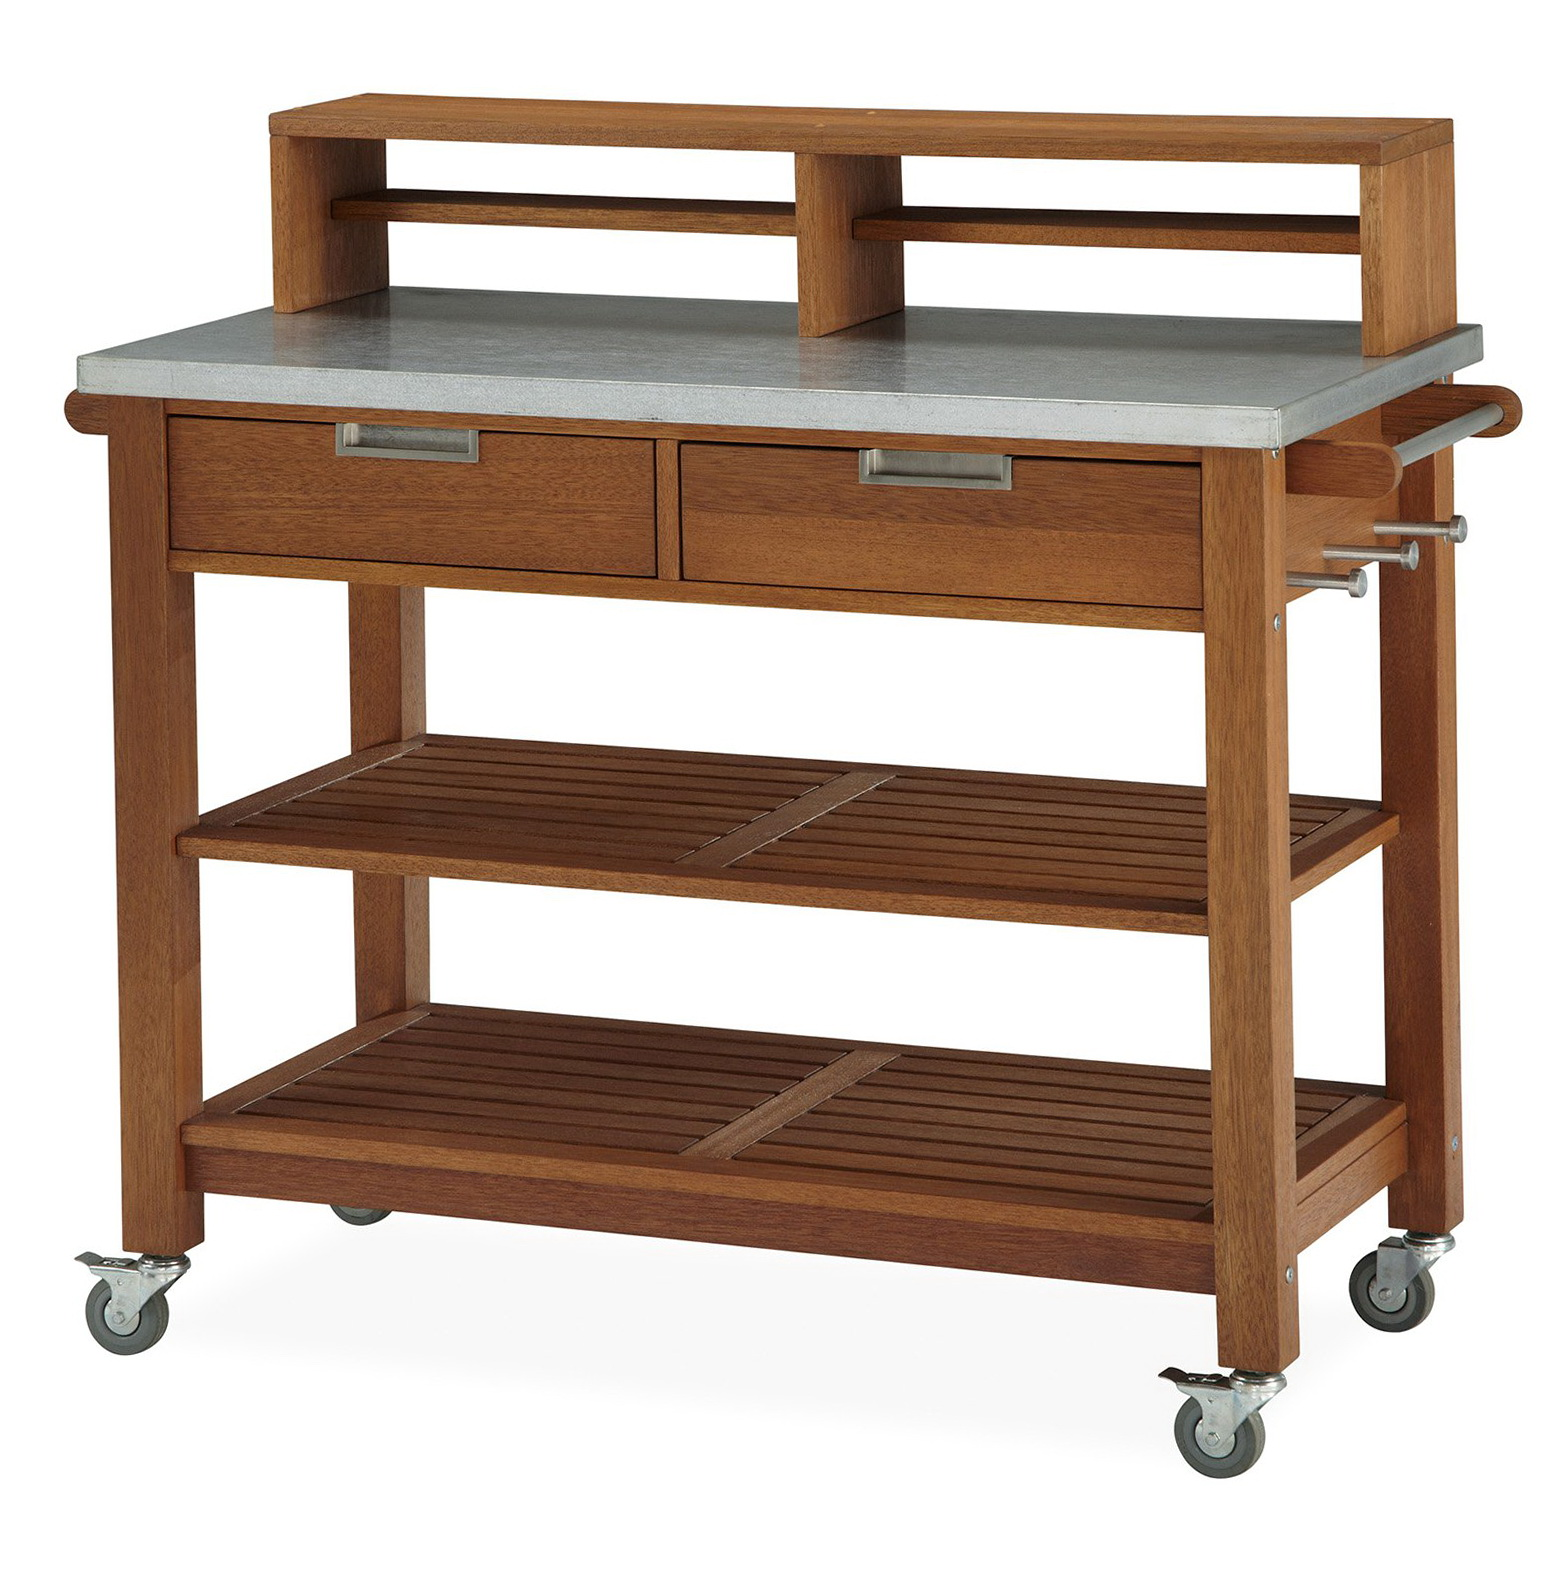 Garden Potting Bench With Storage